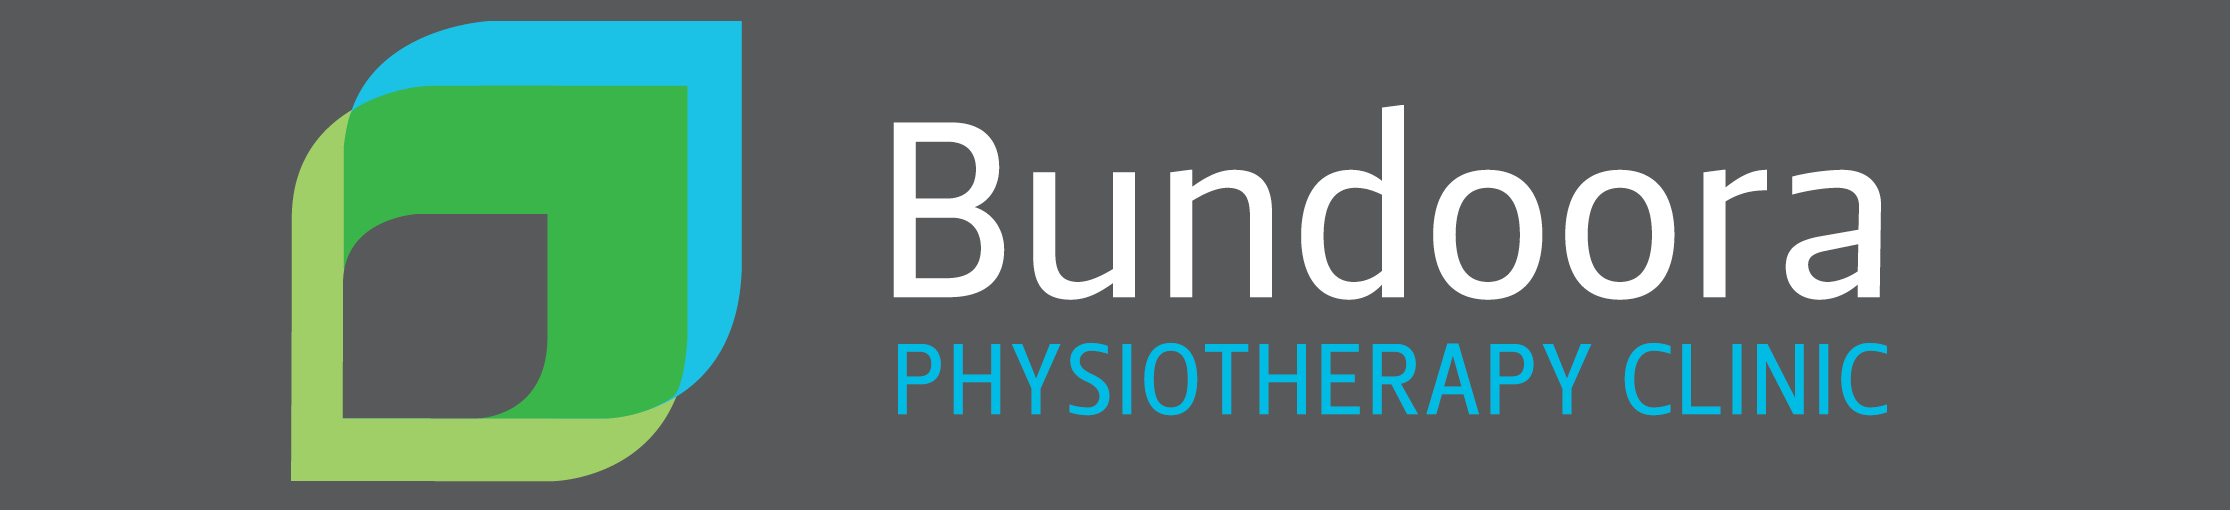 Bundoora Physiotherapy Clinic